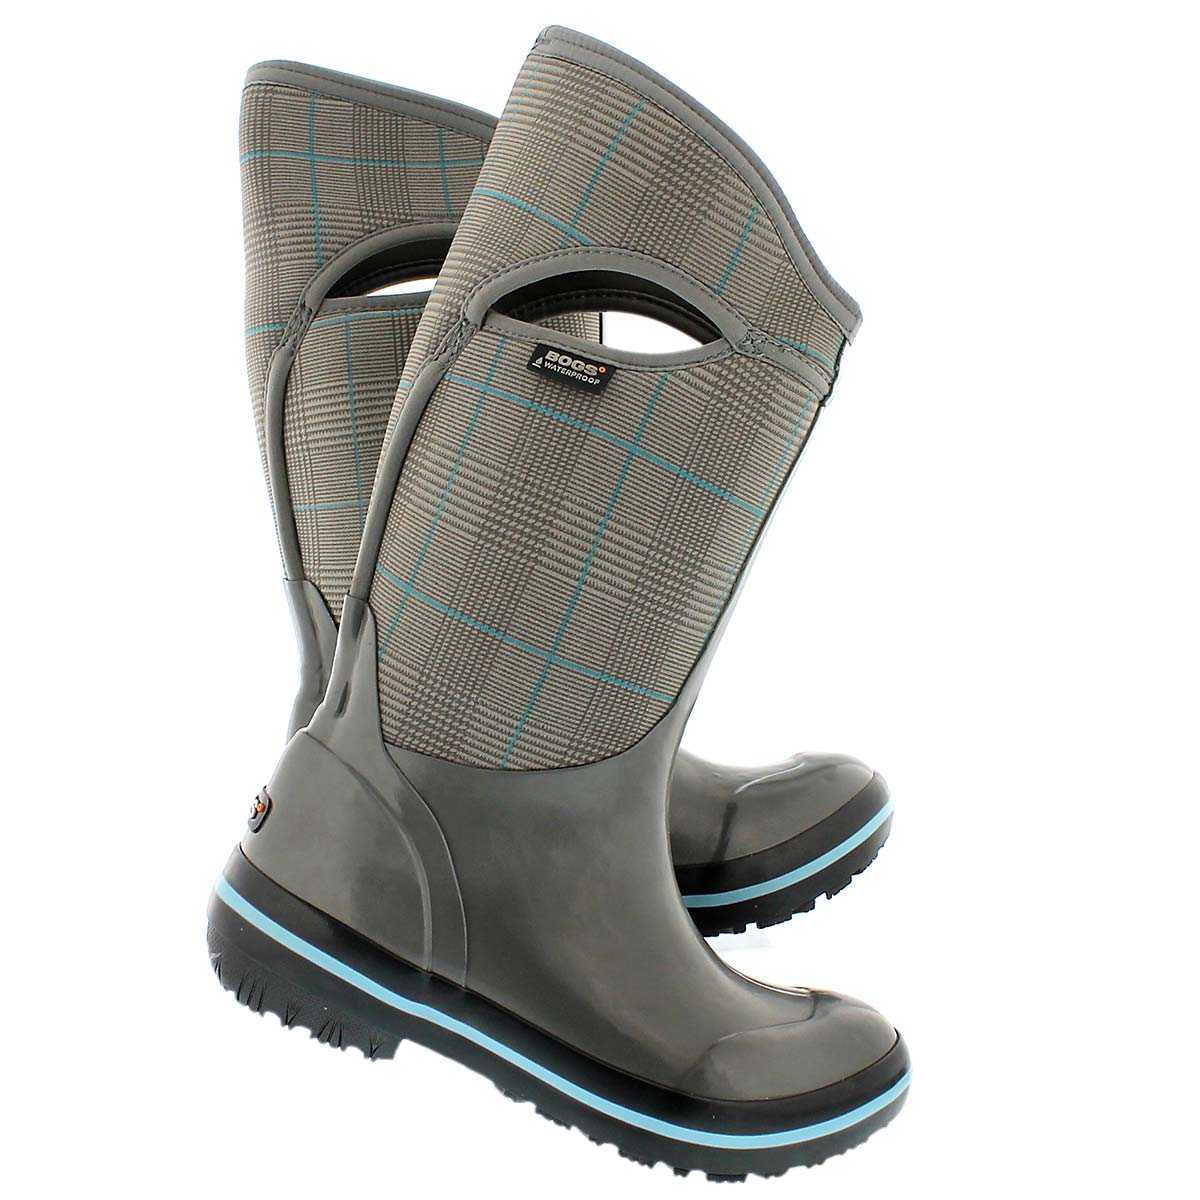 Lds Prince of Wales Tall cha wtpf boot